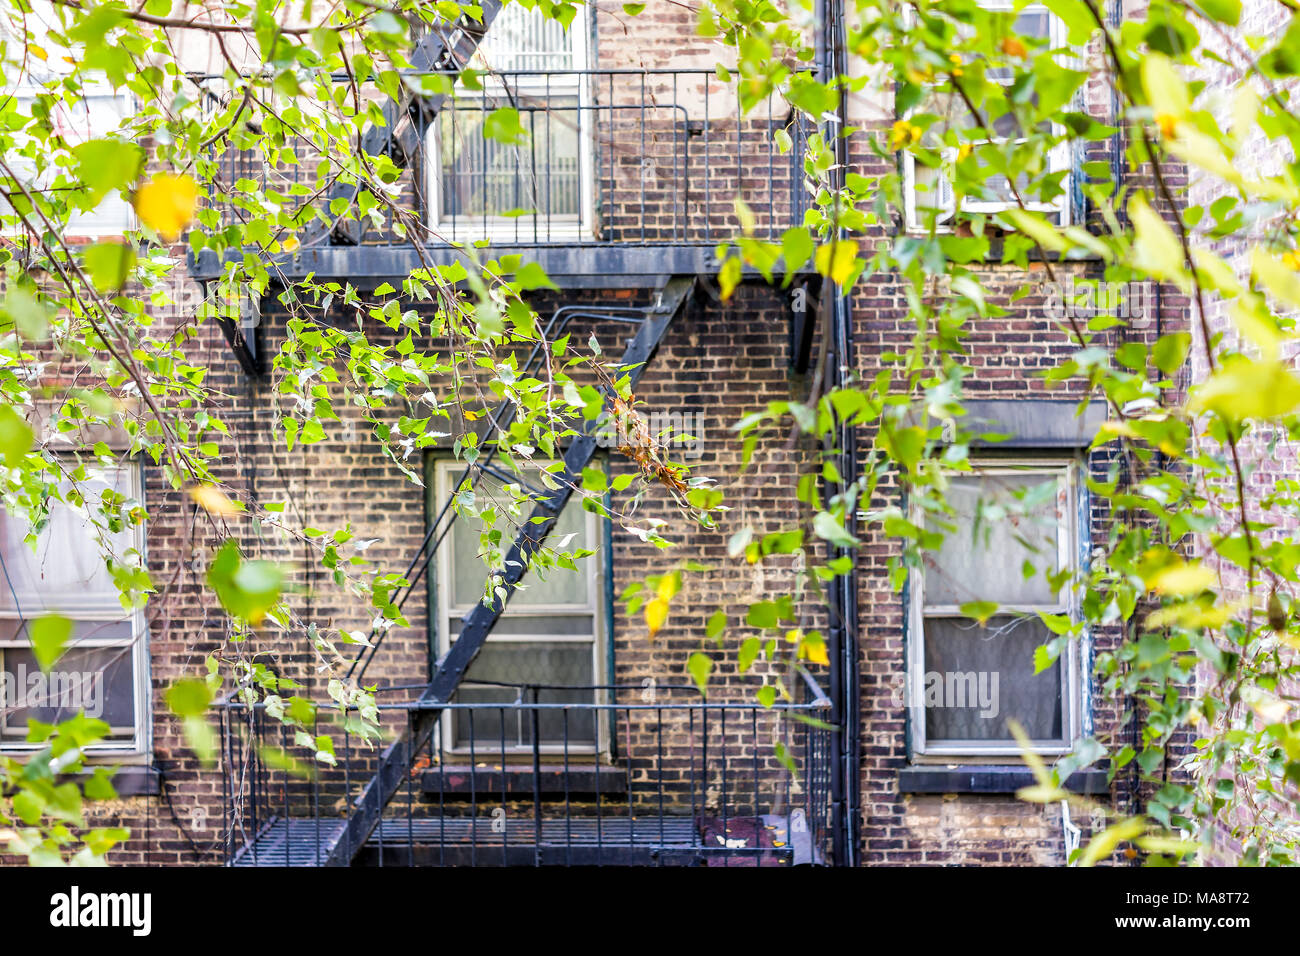 Brick Apartment Condo Building Exterior Architecture In Chelsea Nyc Manhattan New York City With Fire Escapes Windows Green Tree Leaves Stock Photo Alamy